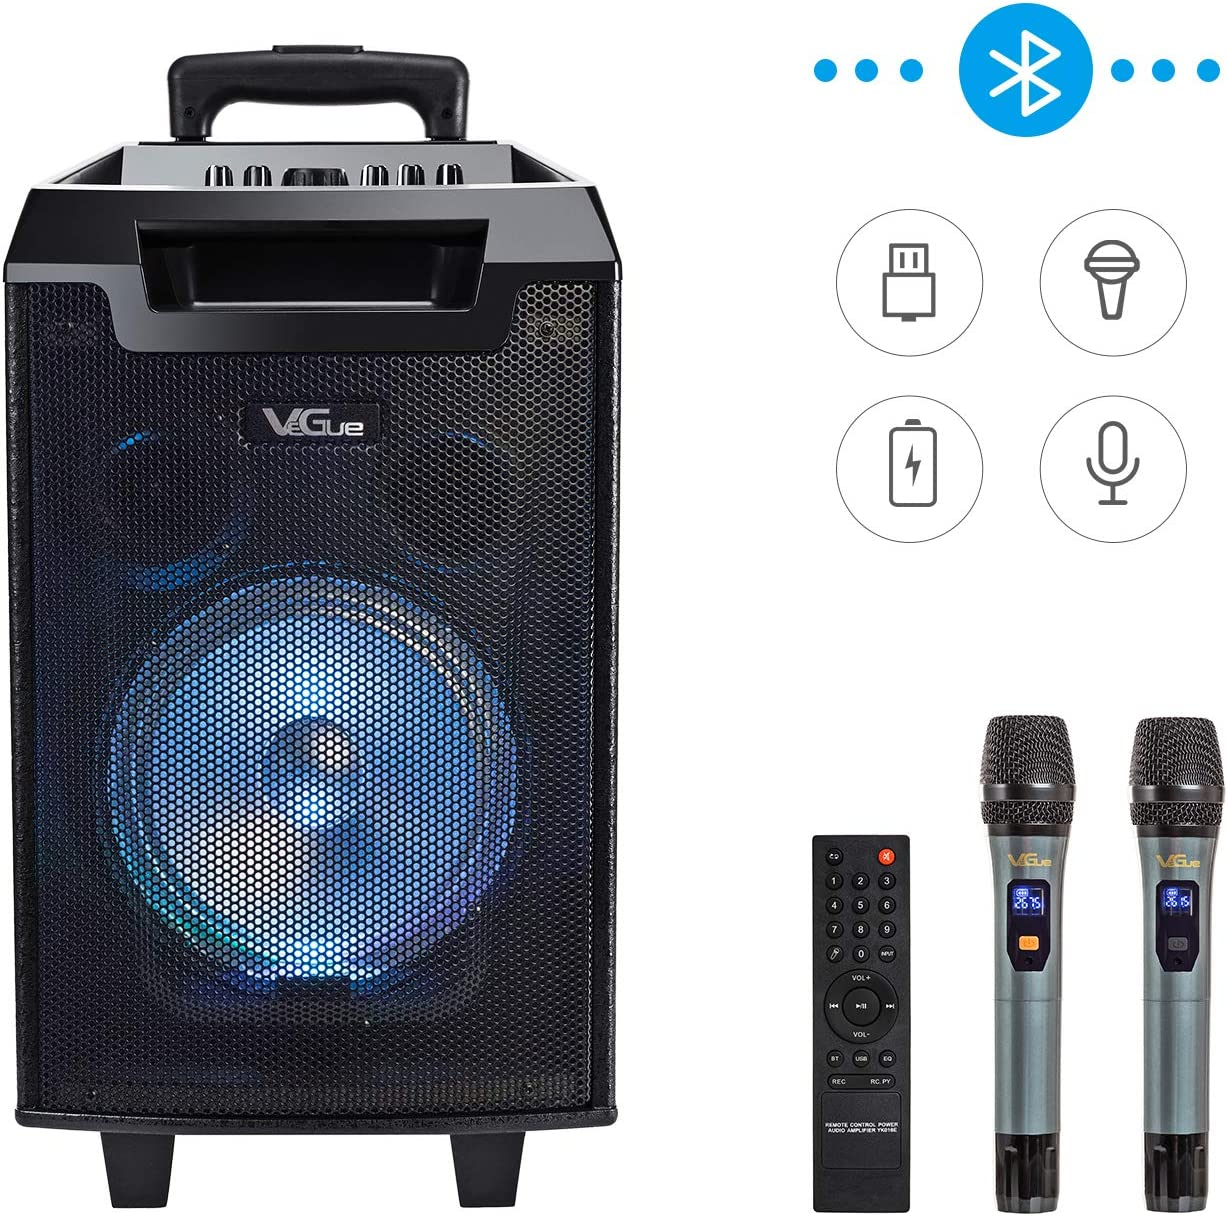 VeGue Karaoke Machine for kids and adults, Portable PA Speaker System with 8'' Woofer Bluetooth Speaker for Party, Meeting, Outdoor/Indoor Activities.